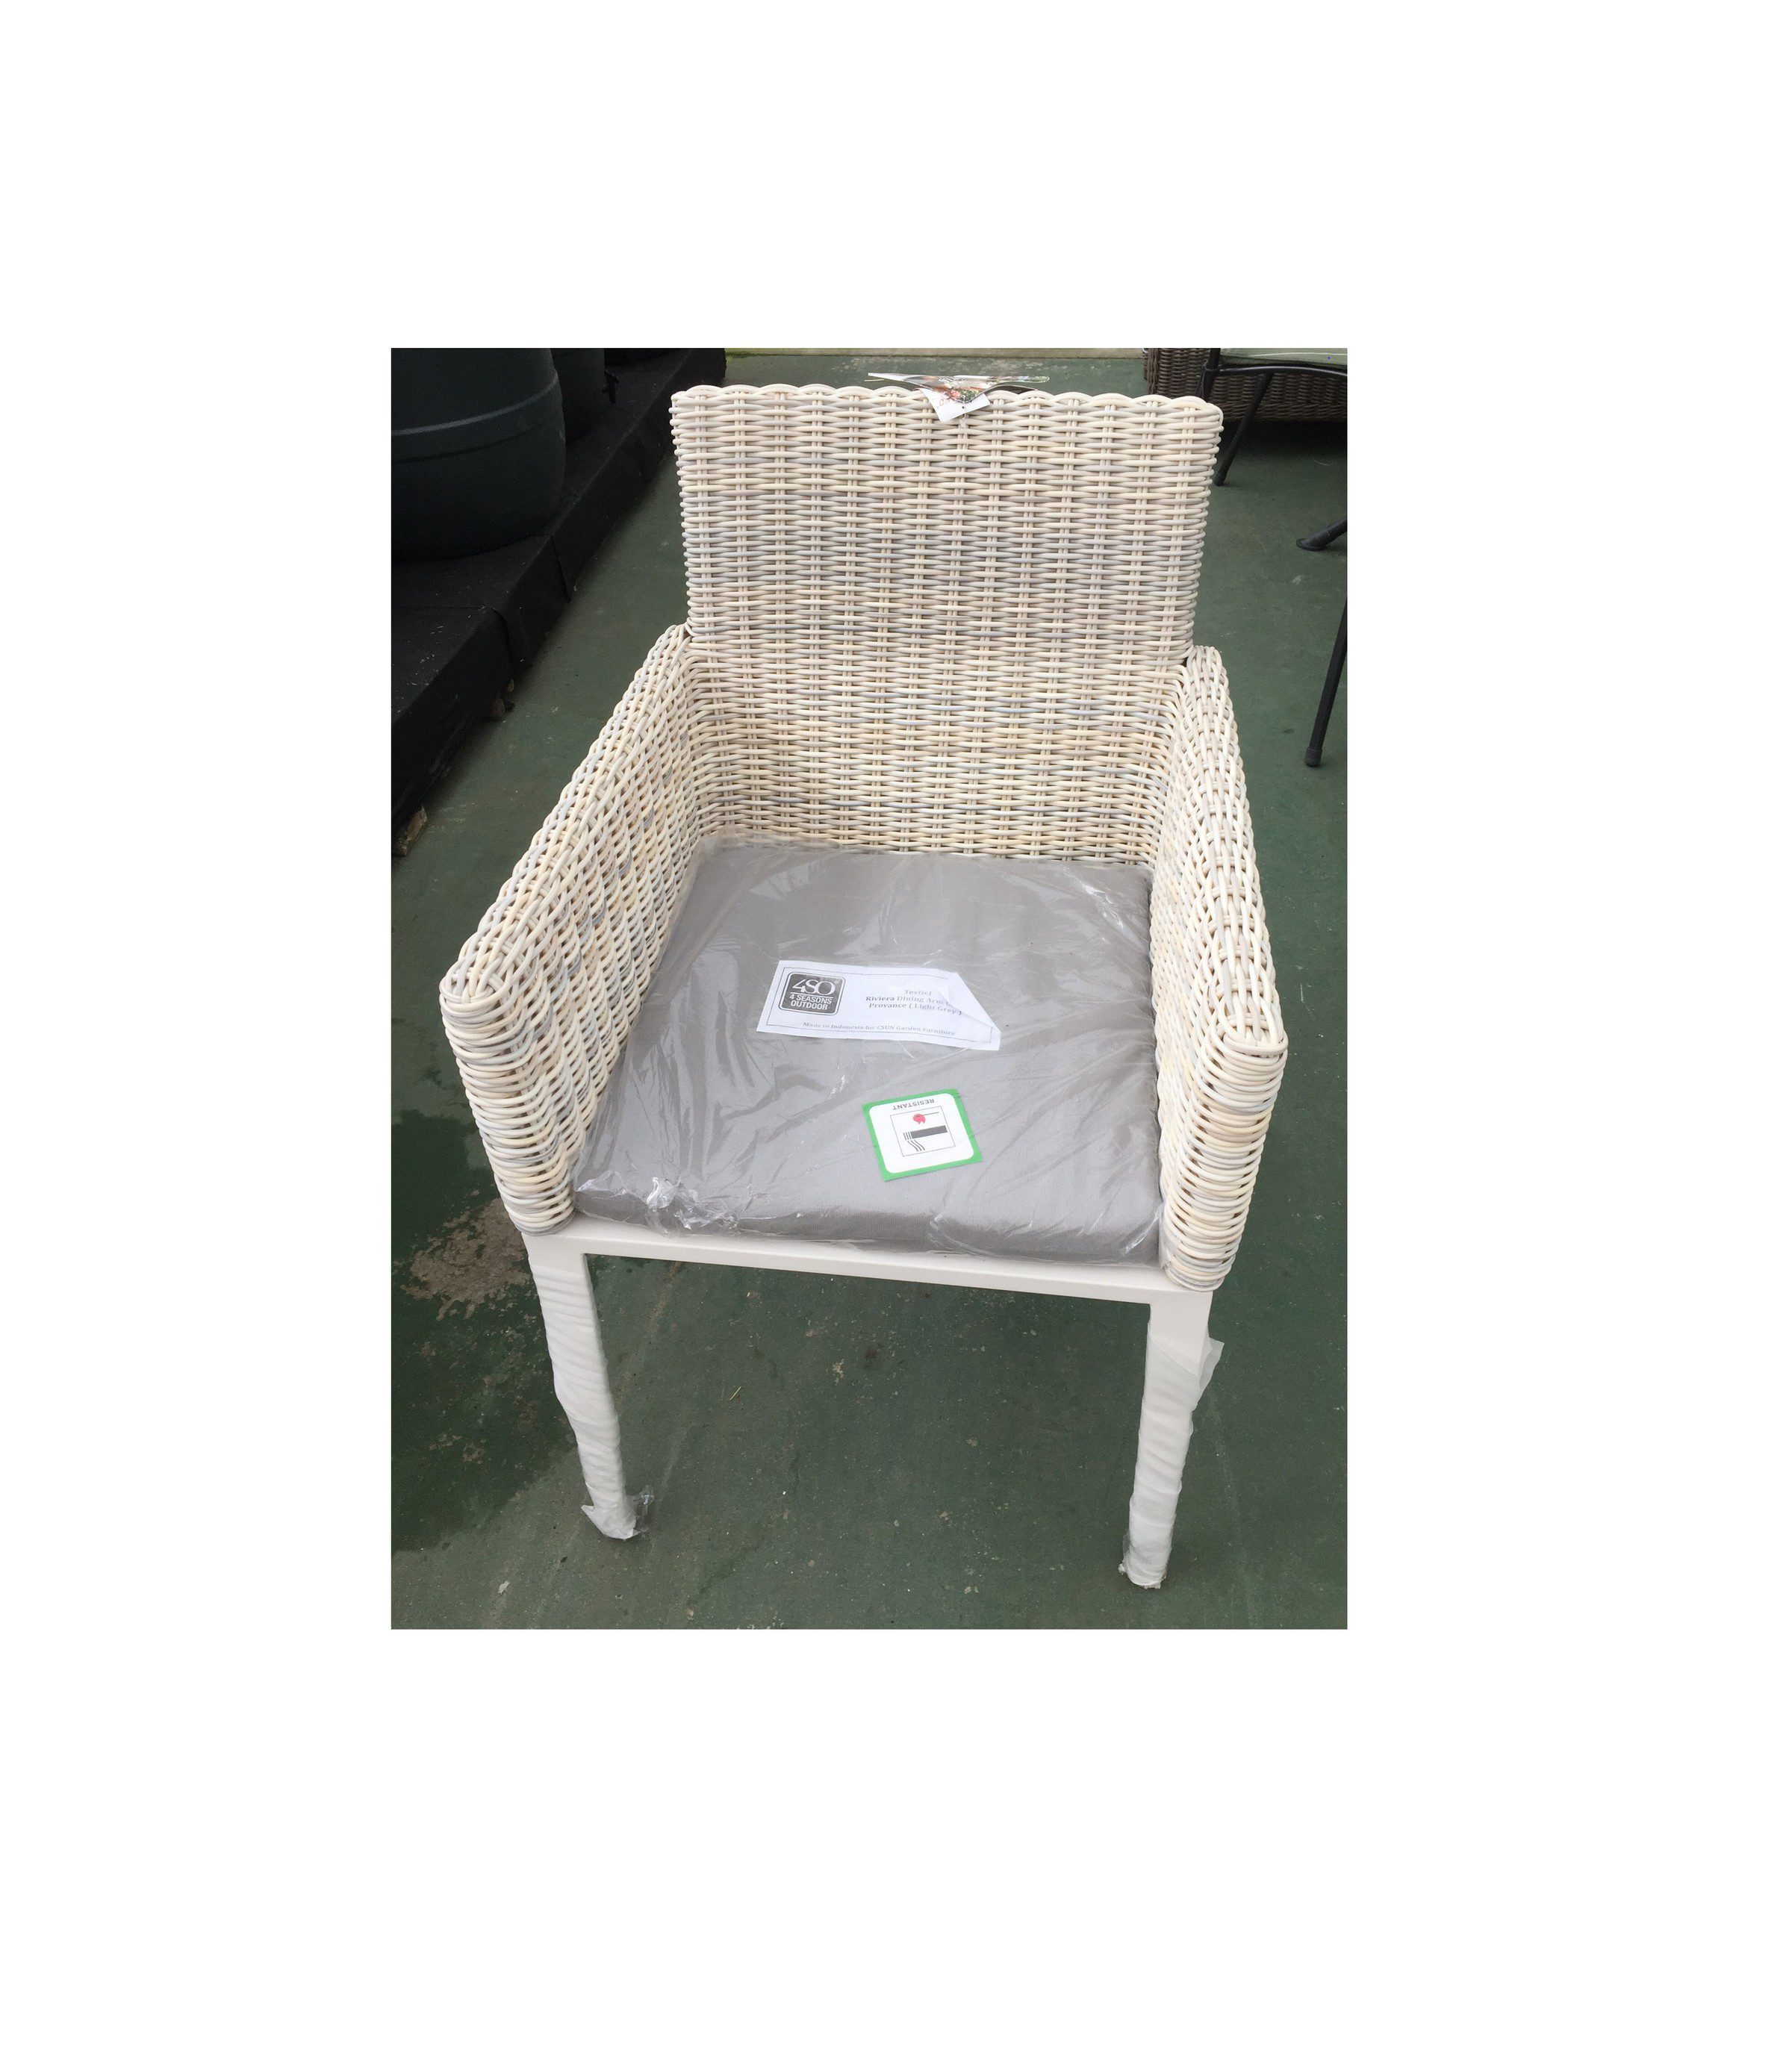 4 Seasons Outdoors Riviera Dining Chair